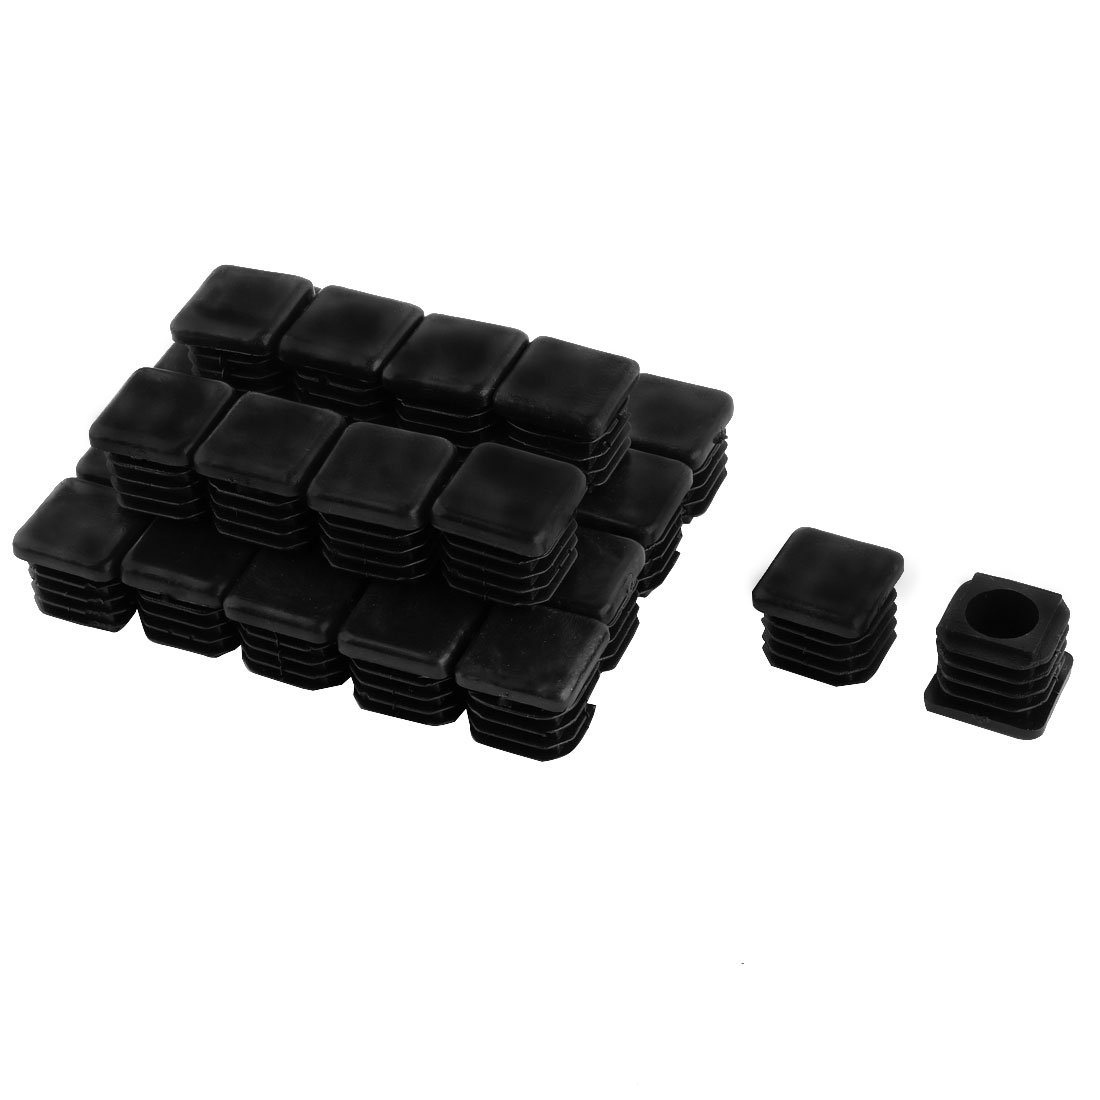 30 Pieces Black Plastic Blanking End Caps Tubing Inserts 19mm x 19mm uxcell a14082800ux0020